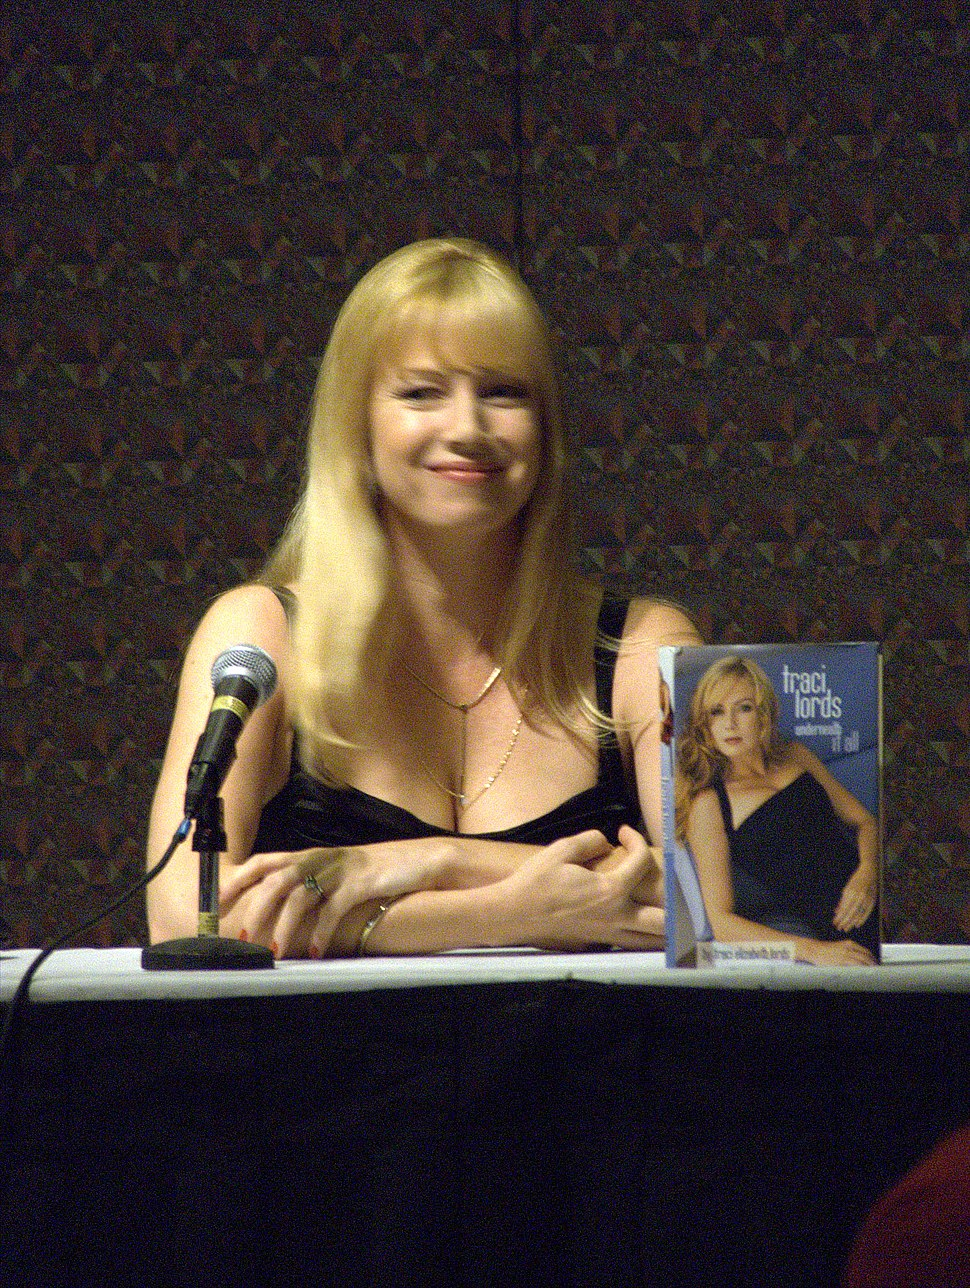 Traci Lords DragonCon 2006